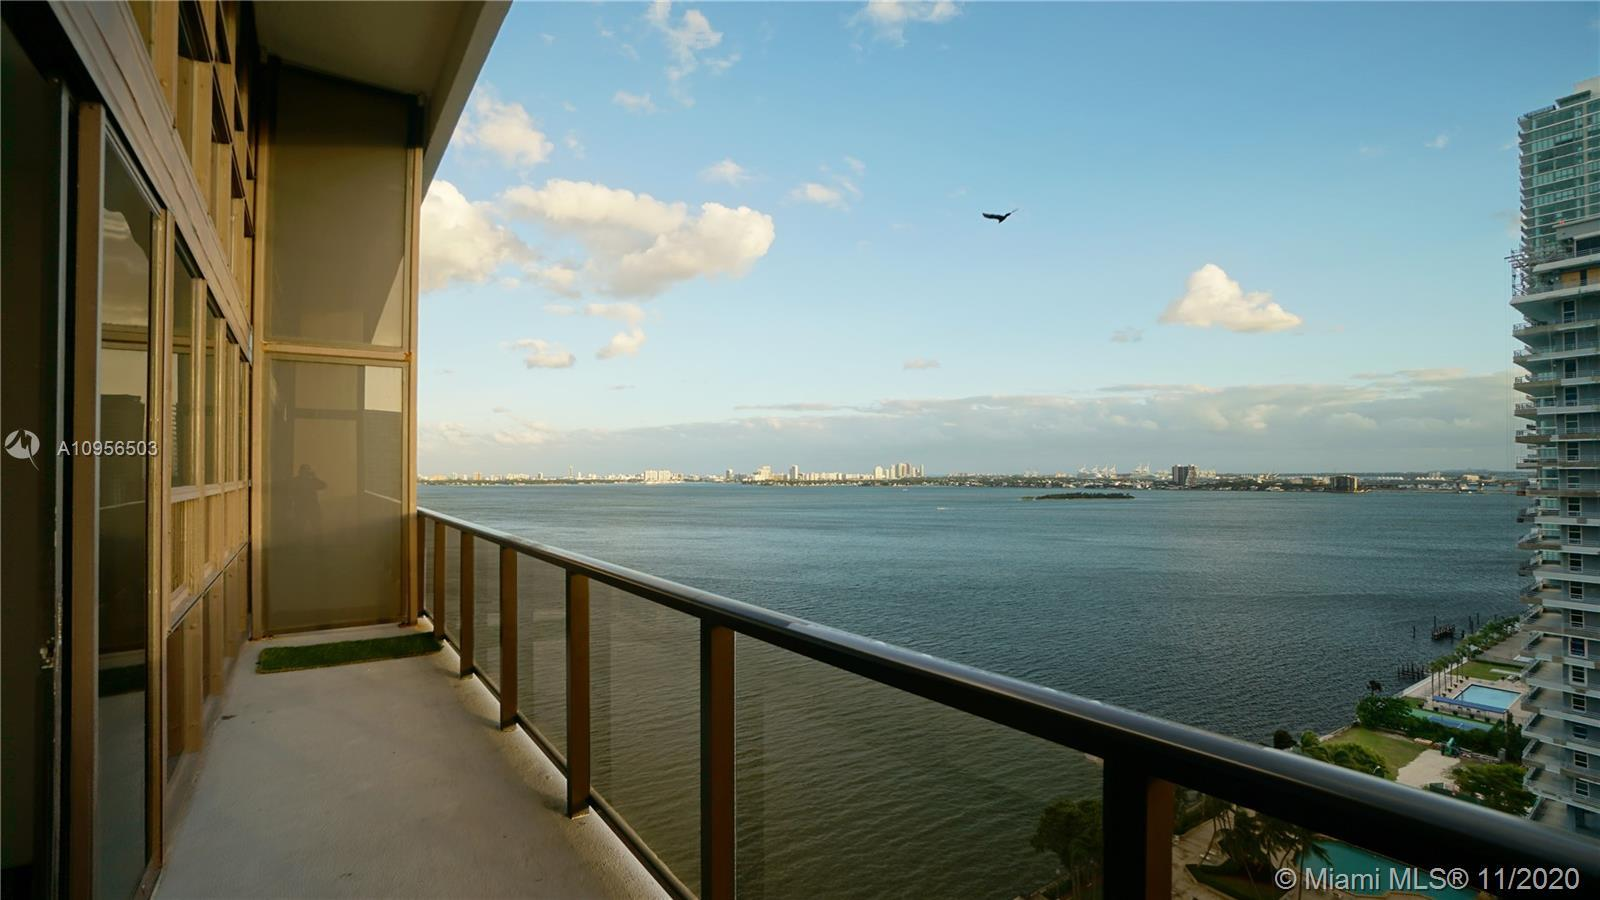 Indulge in this completely renovated, 1850 SF, two story penthouse on the 22nd floor facing south wi